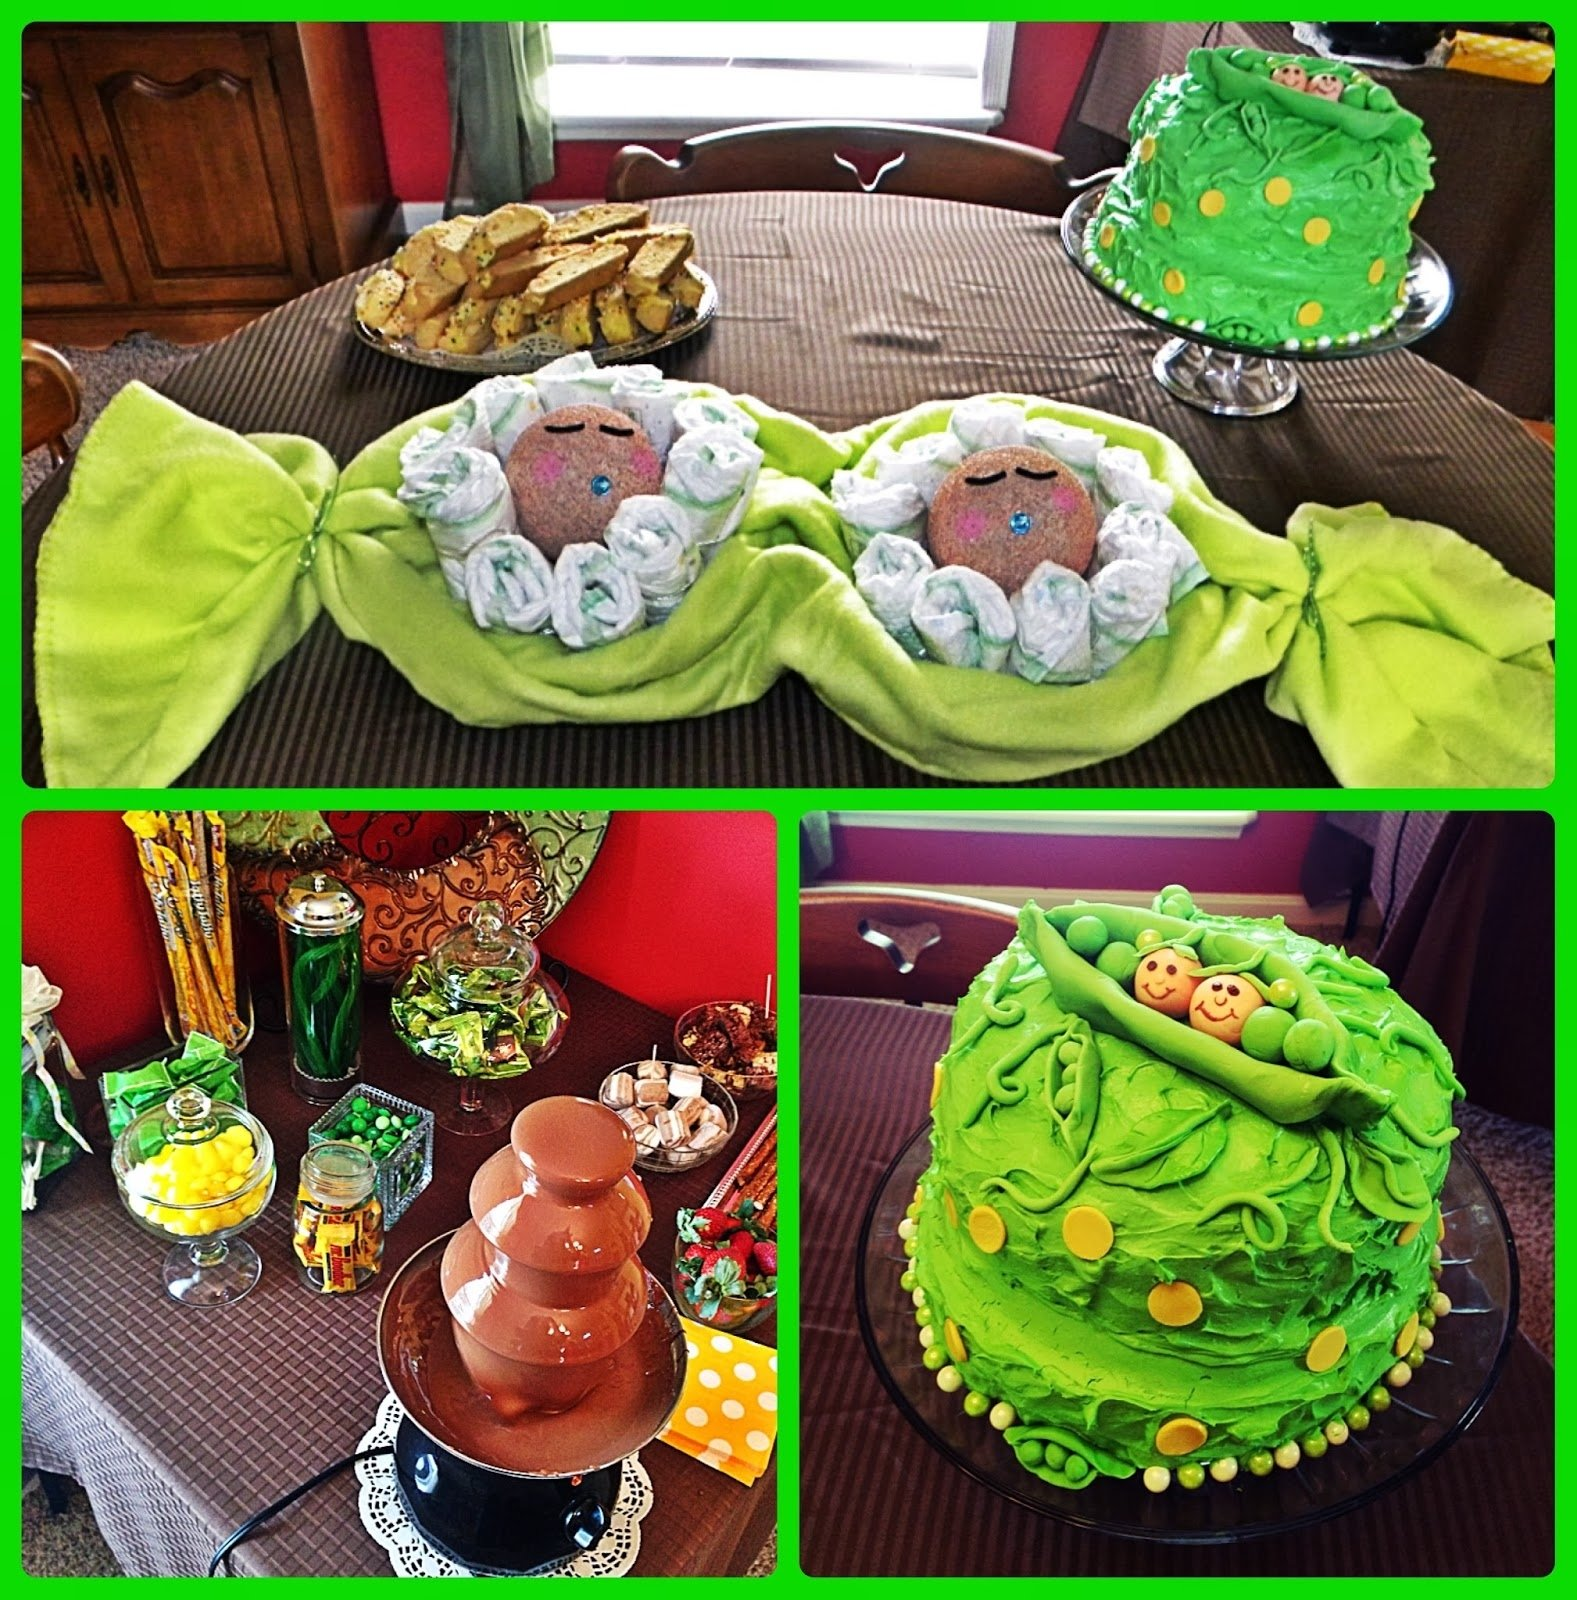 10 Most Recommended Two Peas In A Pod Baby Shower Ideas photo two peas in a pod image 2020